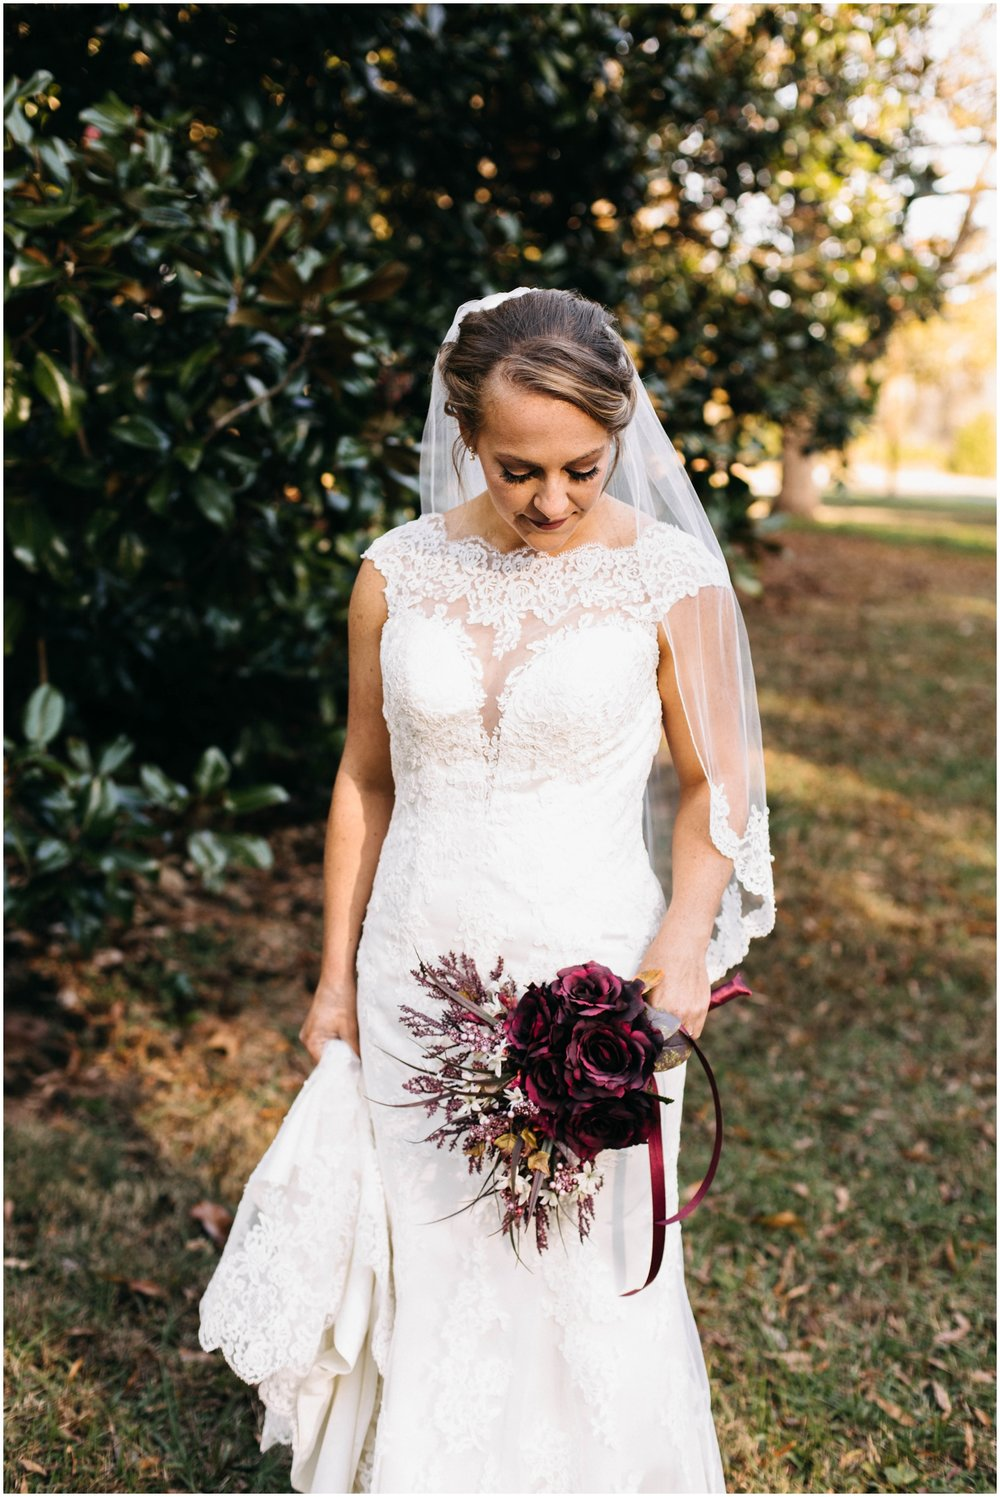 Jess+Dan_rustic_southern_farm_fall_wedding_charlotte_north carolina_taylor powers_0107.jpg